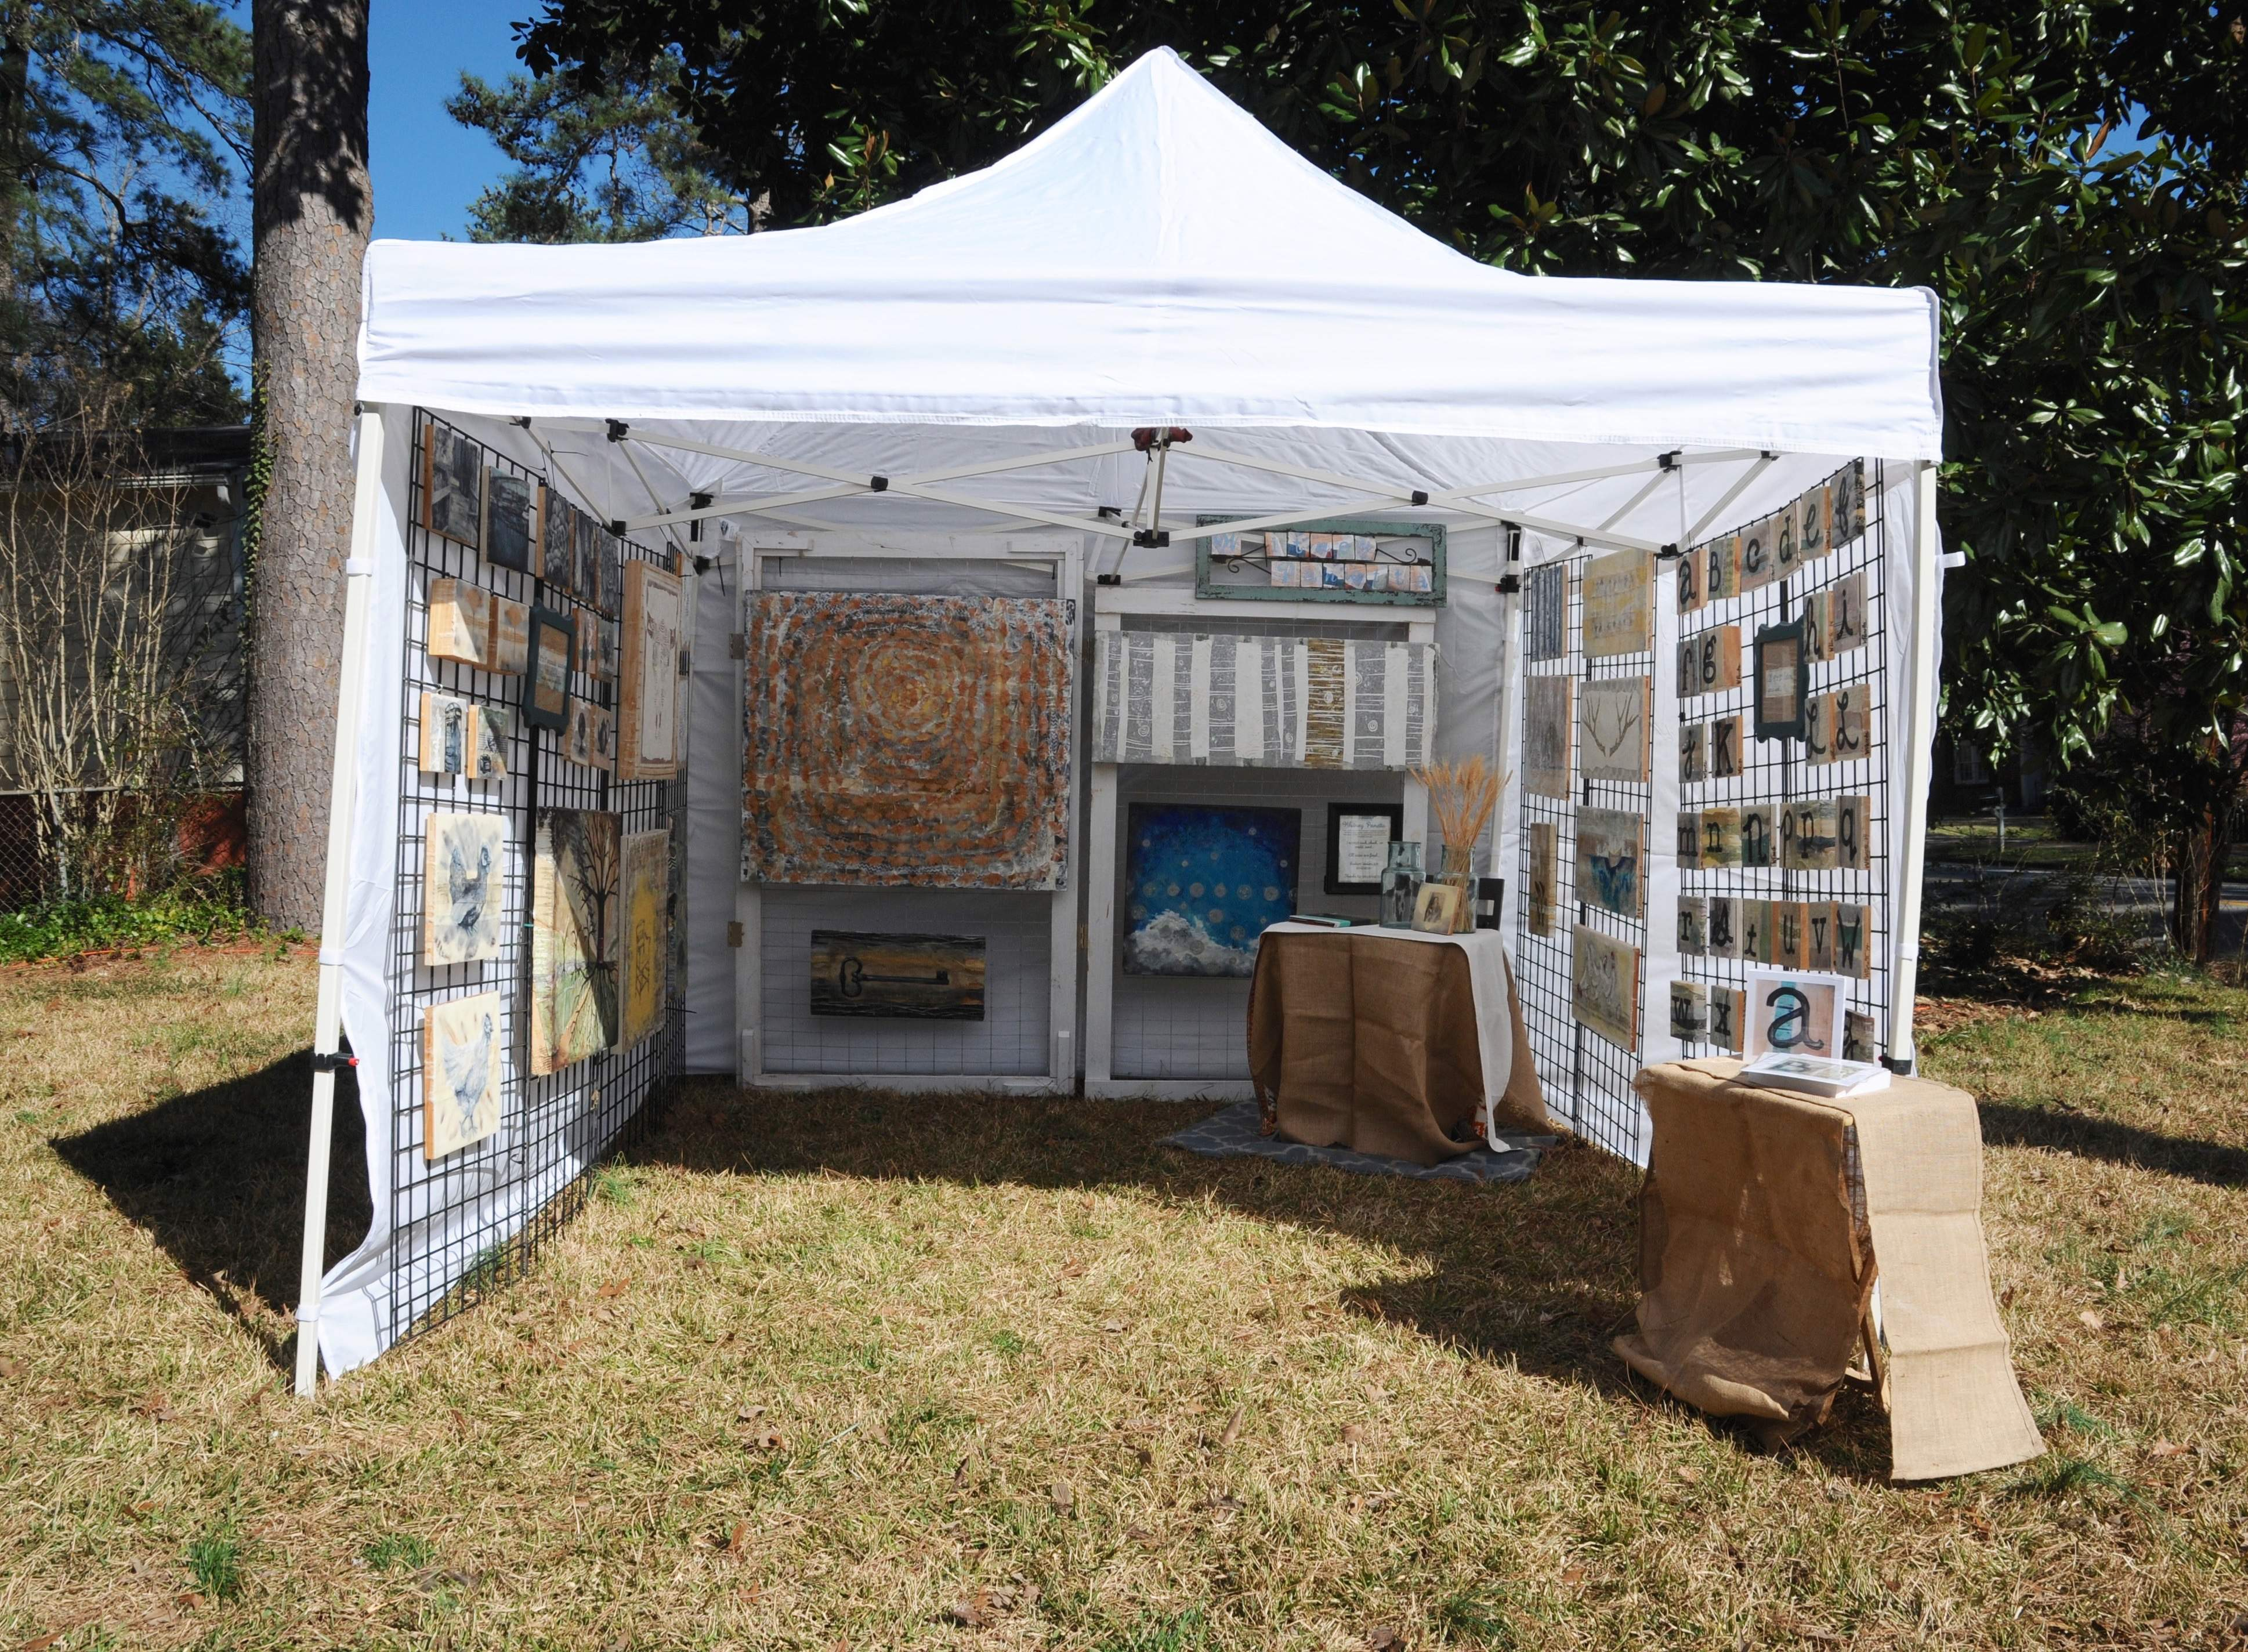 After a year of collecting the necessary parts I finally set up my outdoor booth. & Craft Fairs: Setting Up My Outdoor Booth | Look Between the Lines